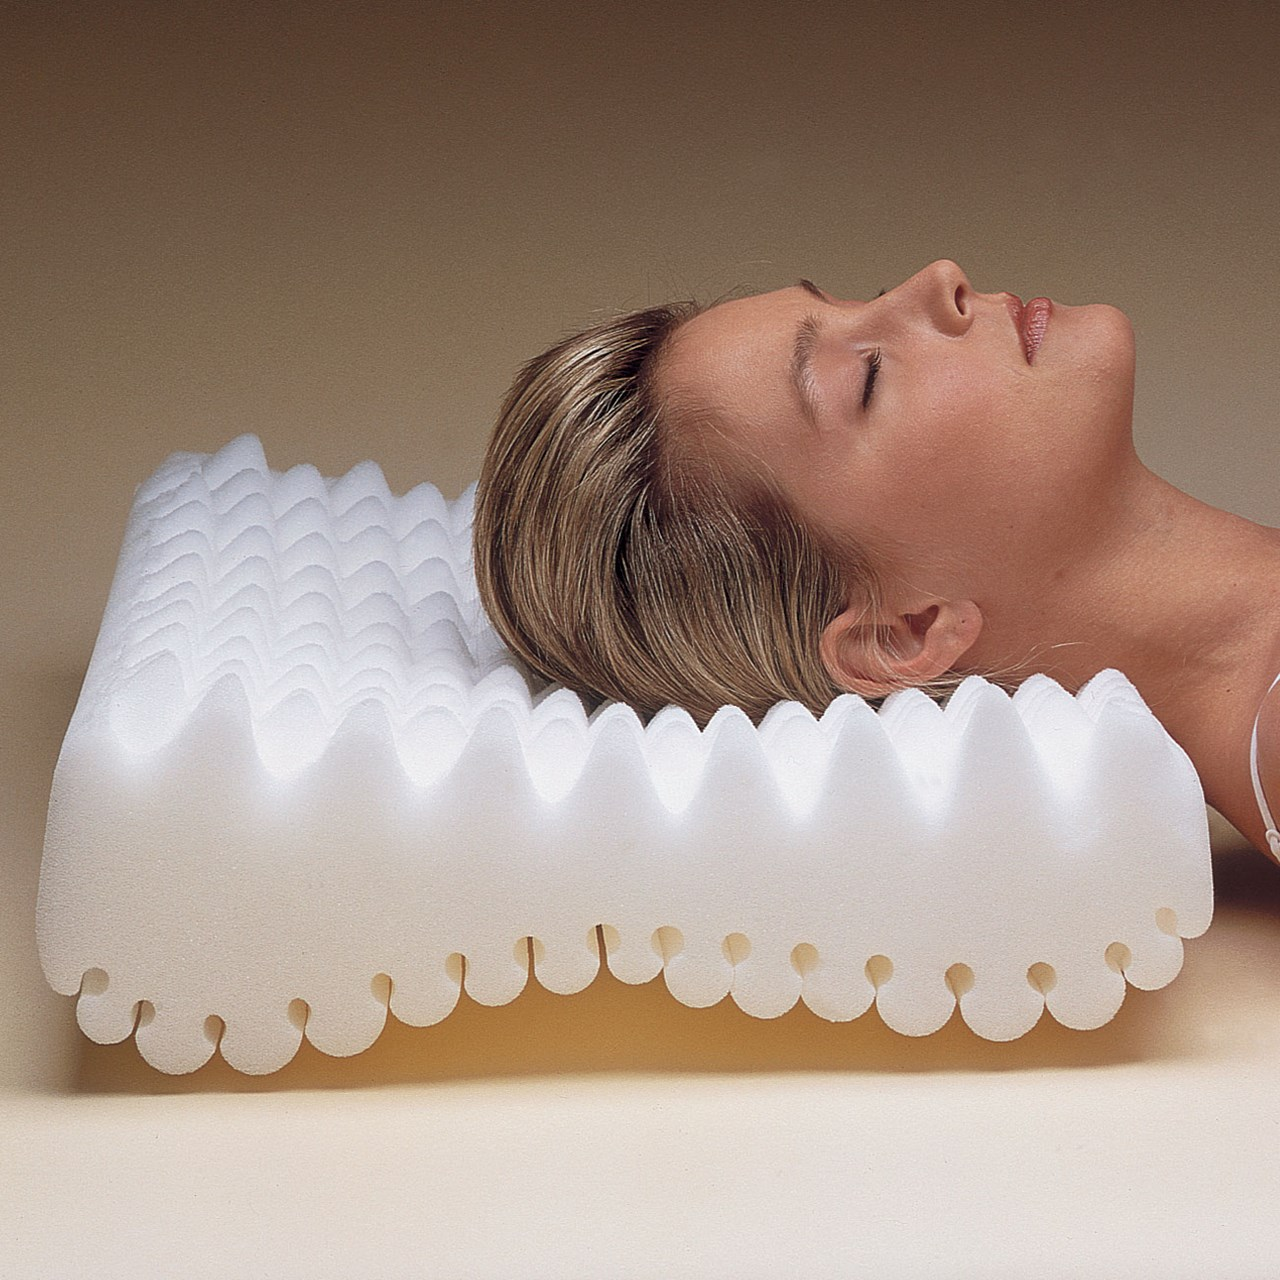 Maxiaids Obusforme Neck 4 In 1 Cervical Pillow